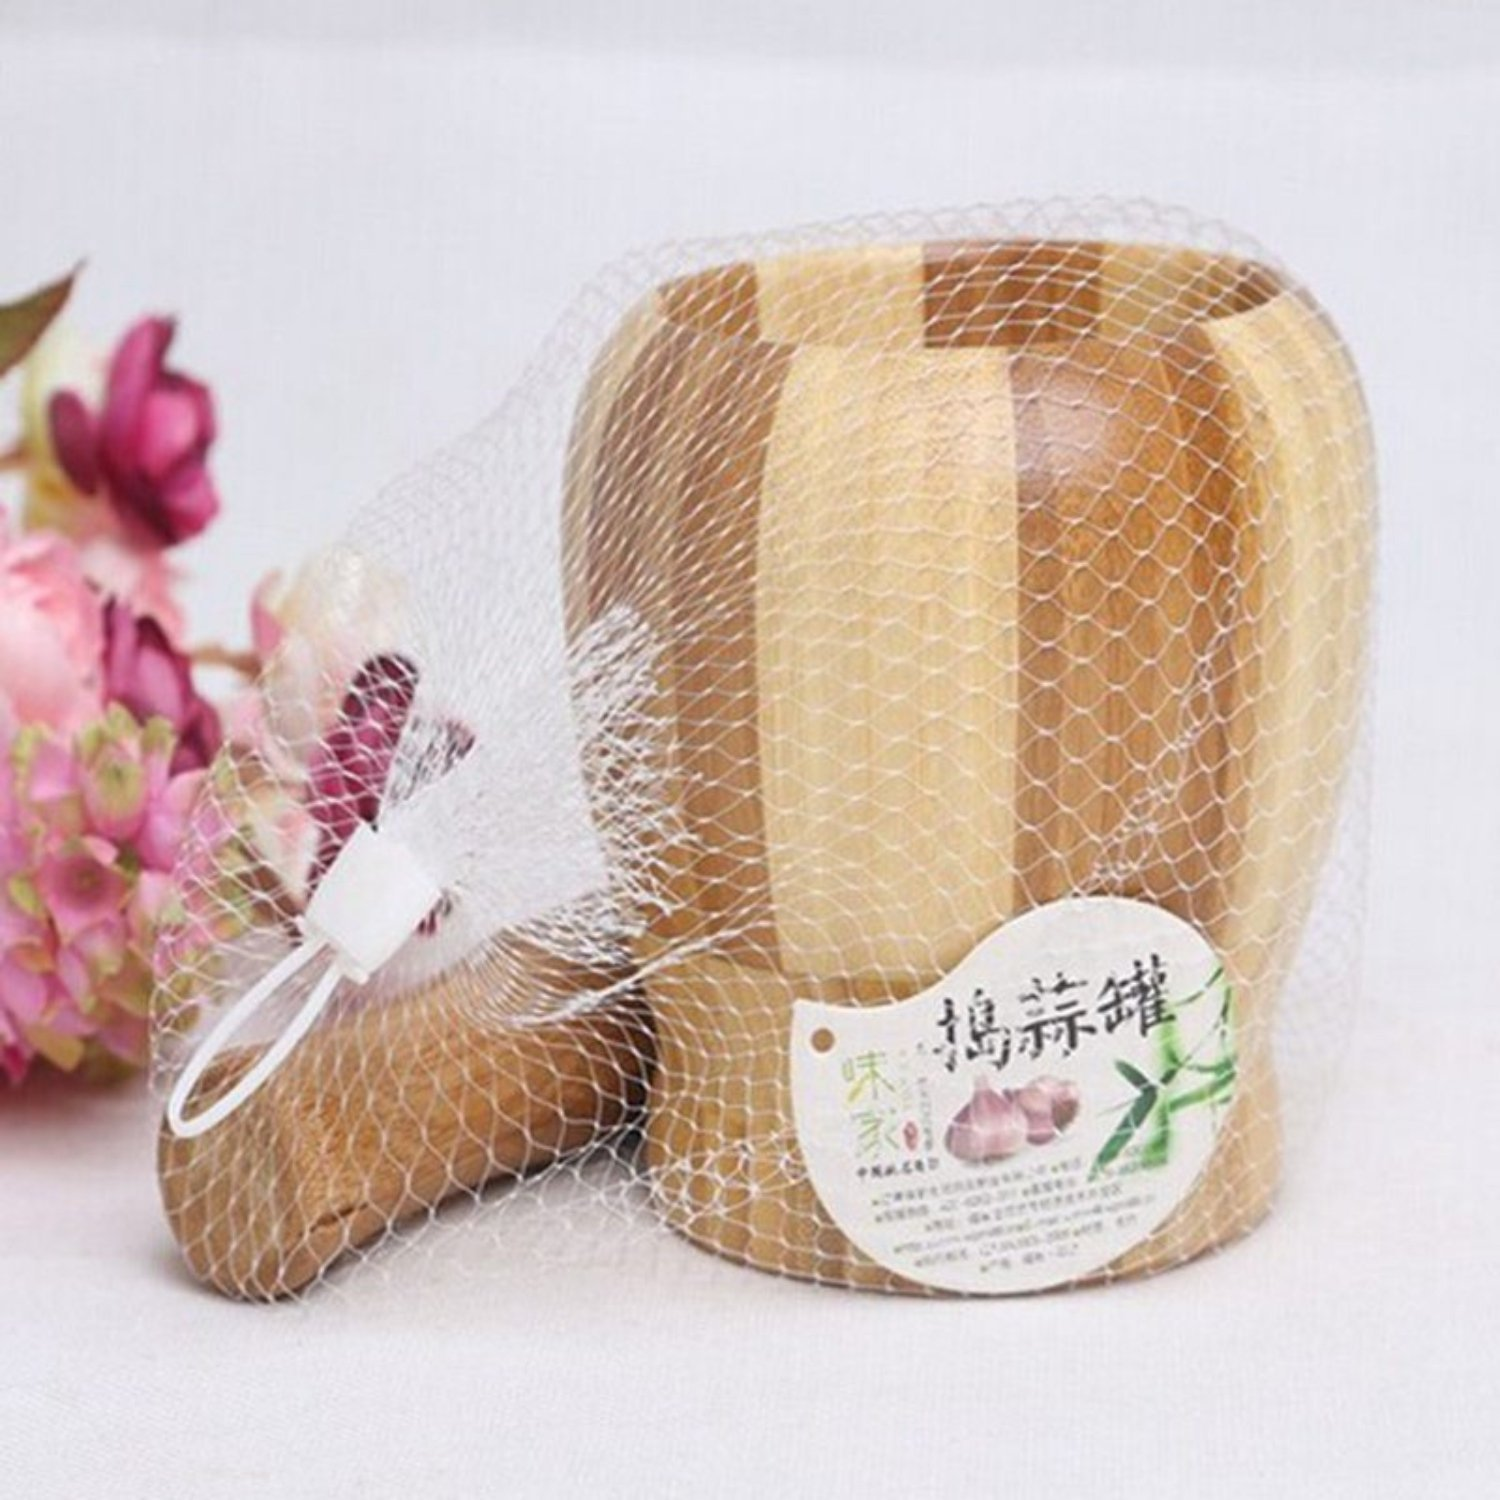 Natural Living Bamboo Garlic Mortar And Pestle With High Quality